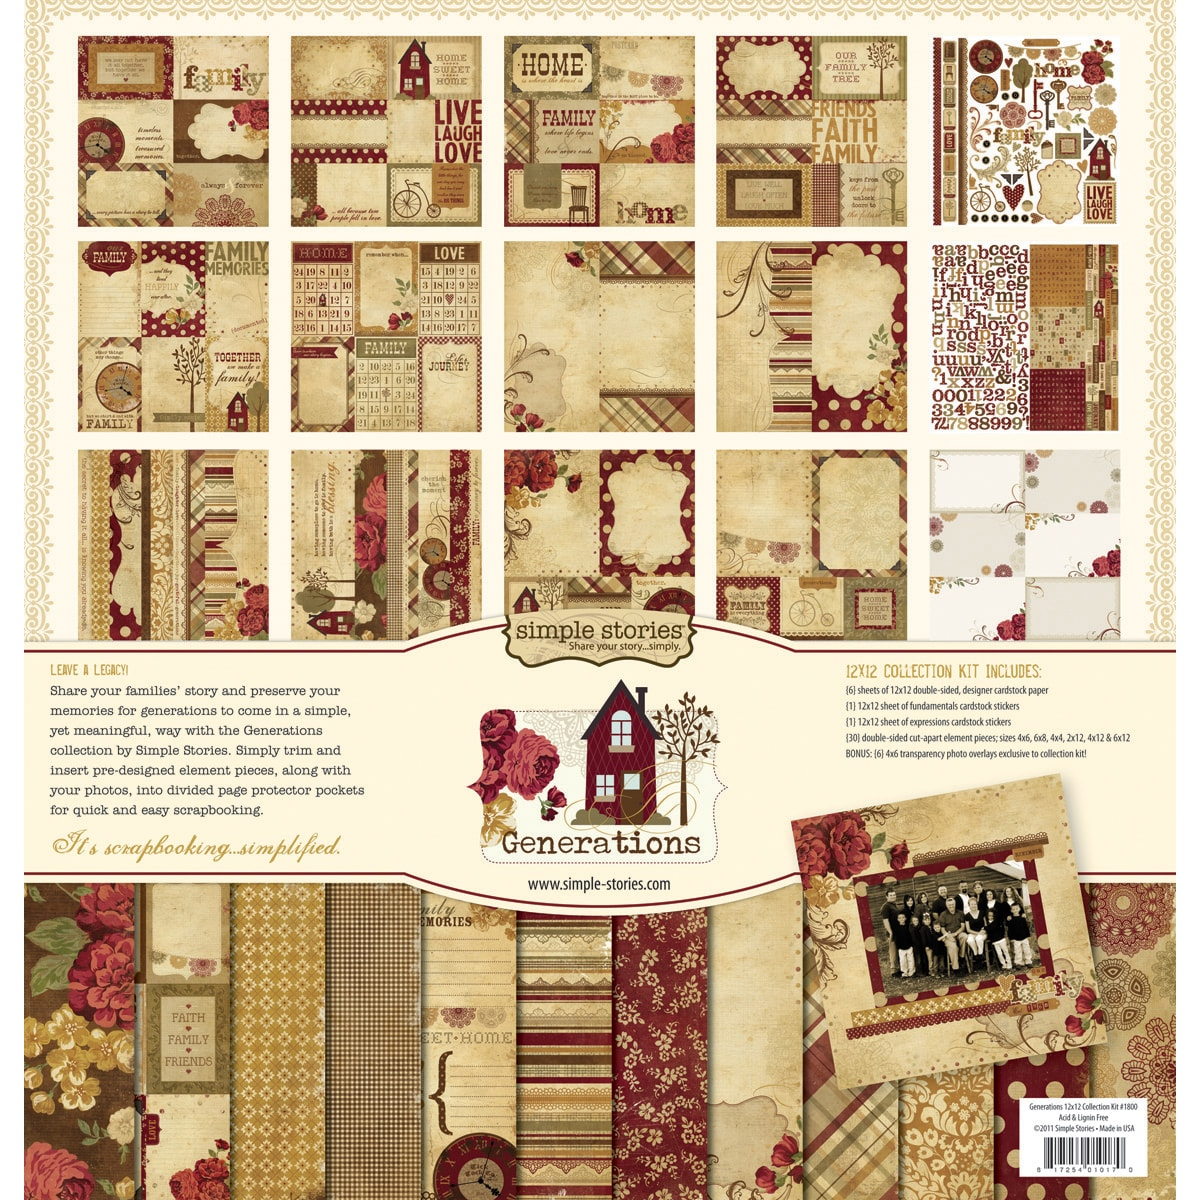 Simple Stories 'Generations Collection' Scrapebooking Kit